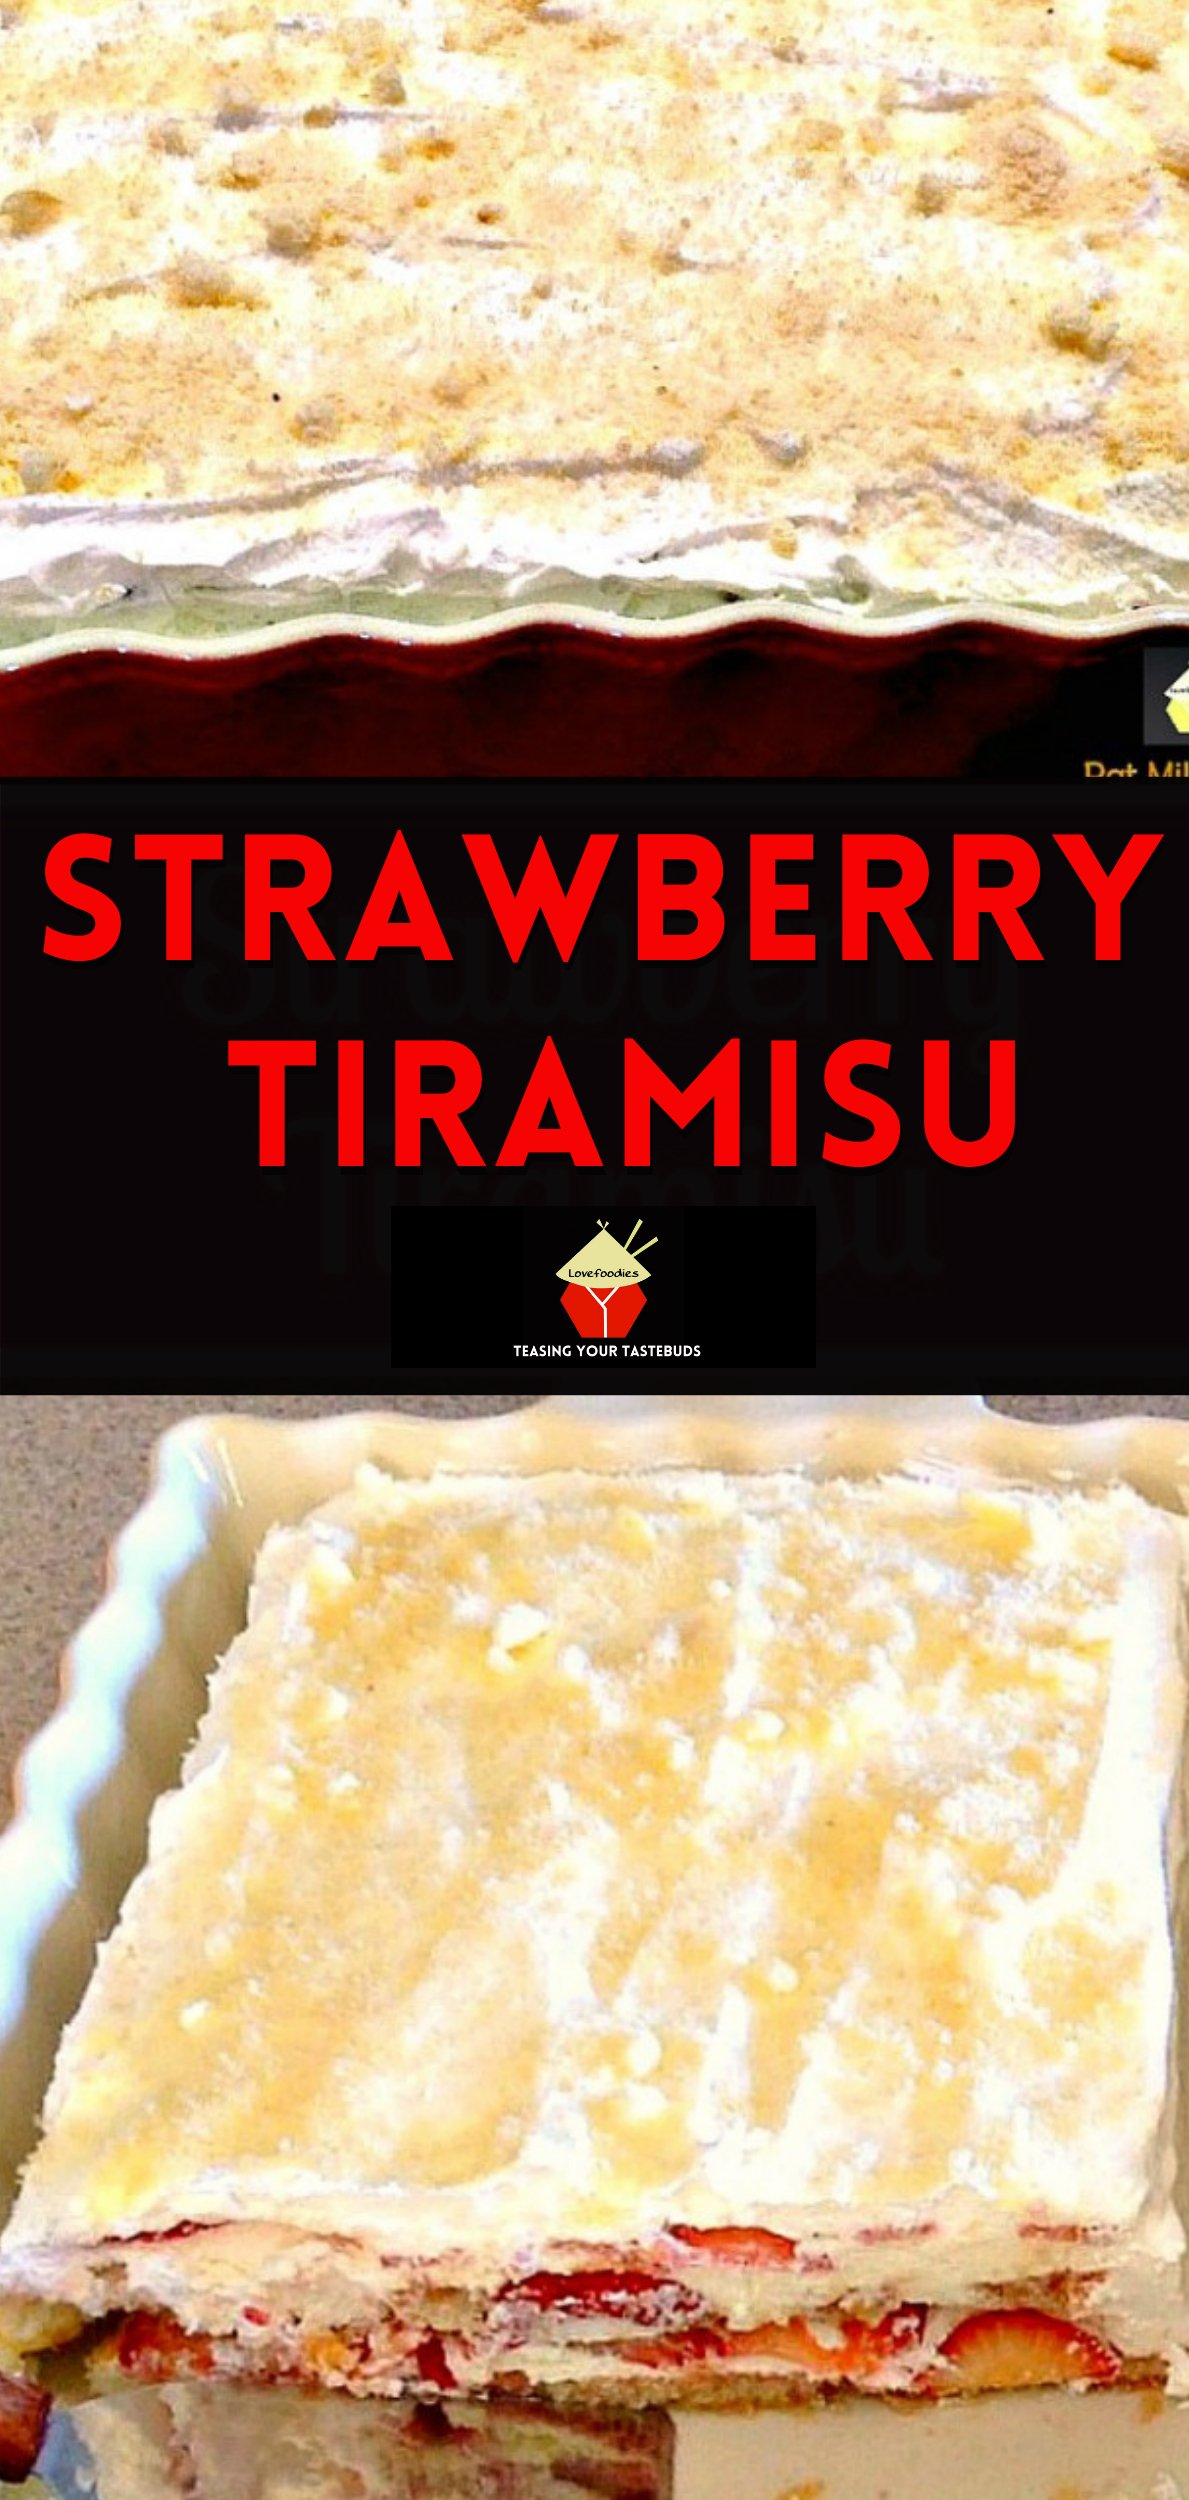 Strawberry Tiramisu is a lovely twist on the classic Italian tiramisu, with fresh strawberries.Easy to prepare. Great no-bake chilled dessert, perfect for parties and potlucks